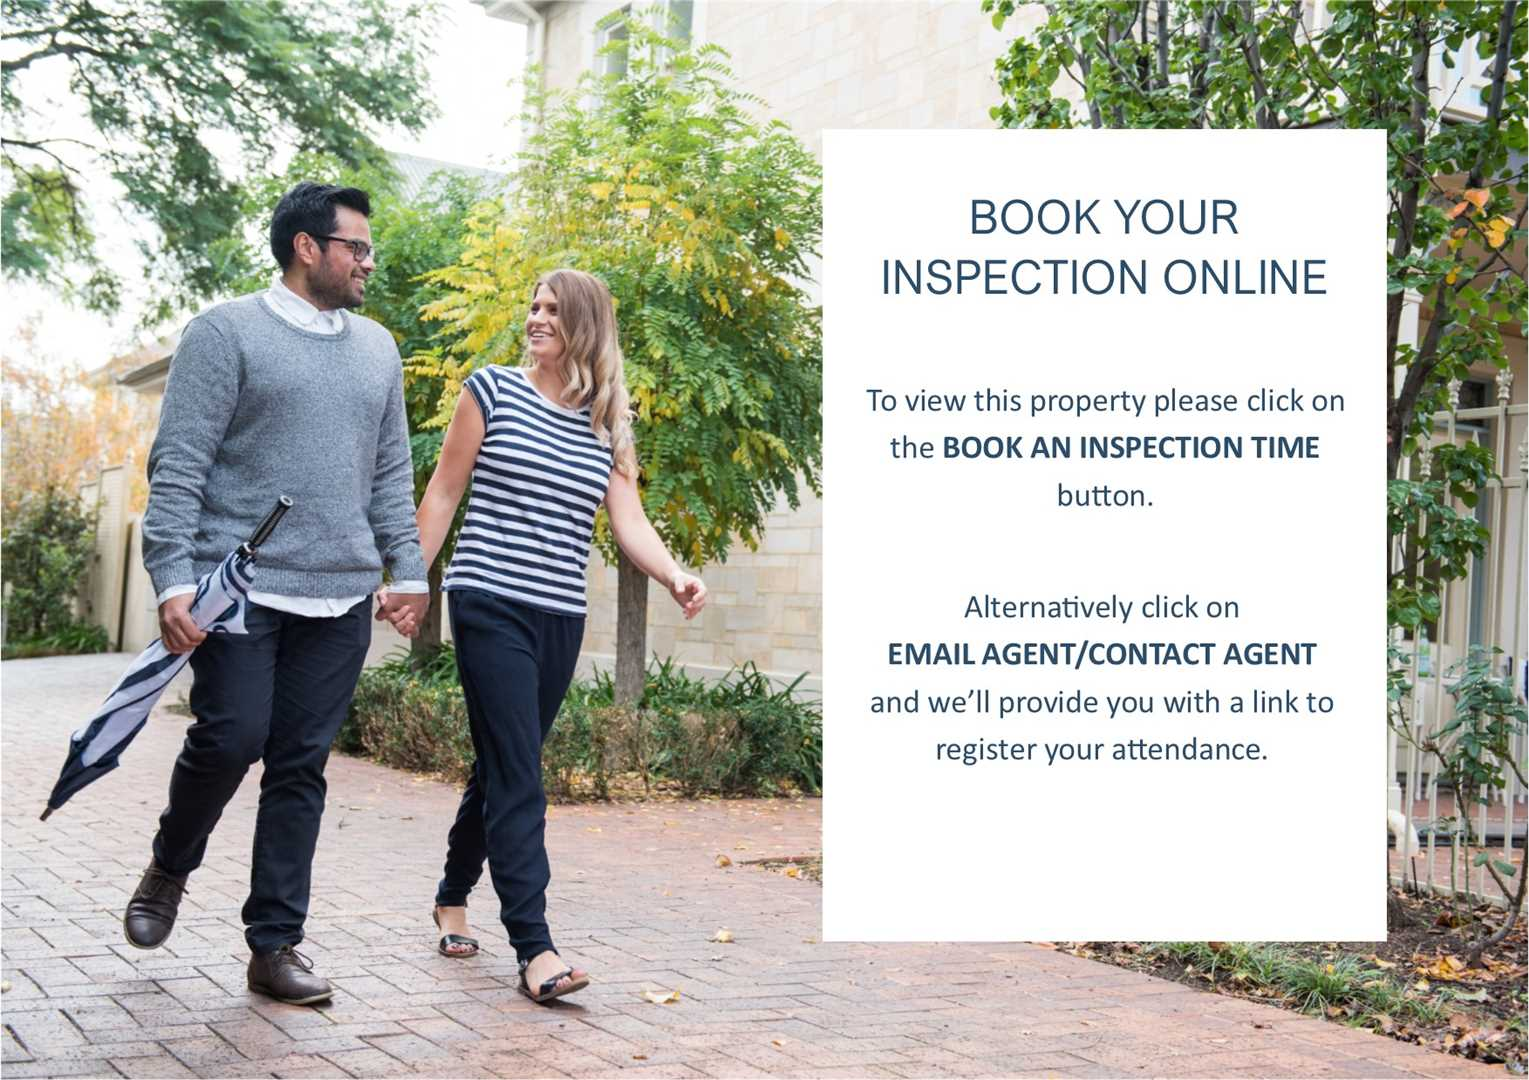 Book your inspection online